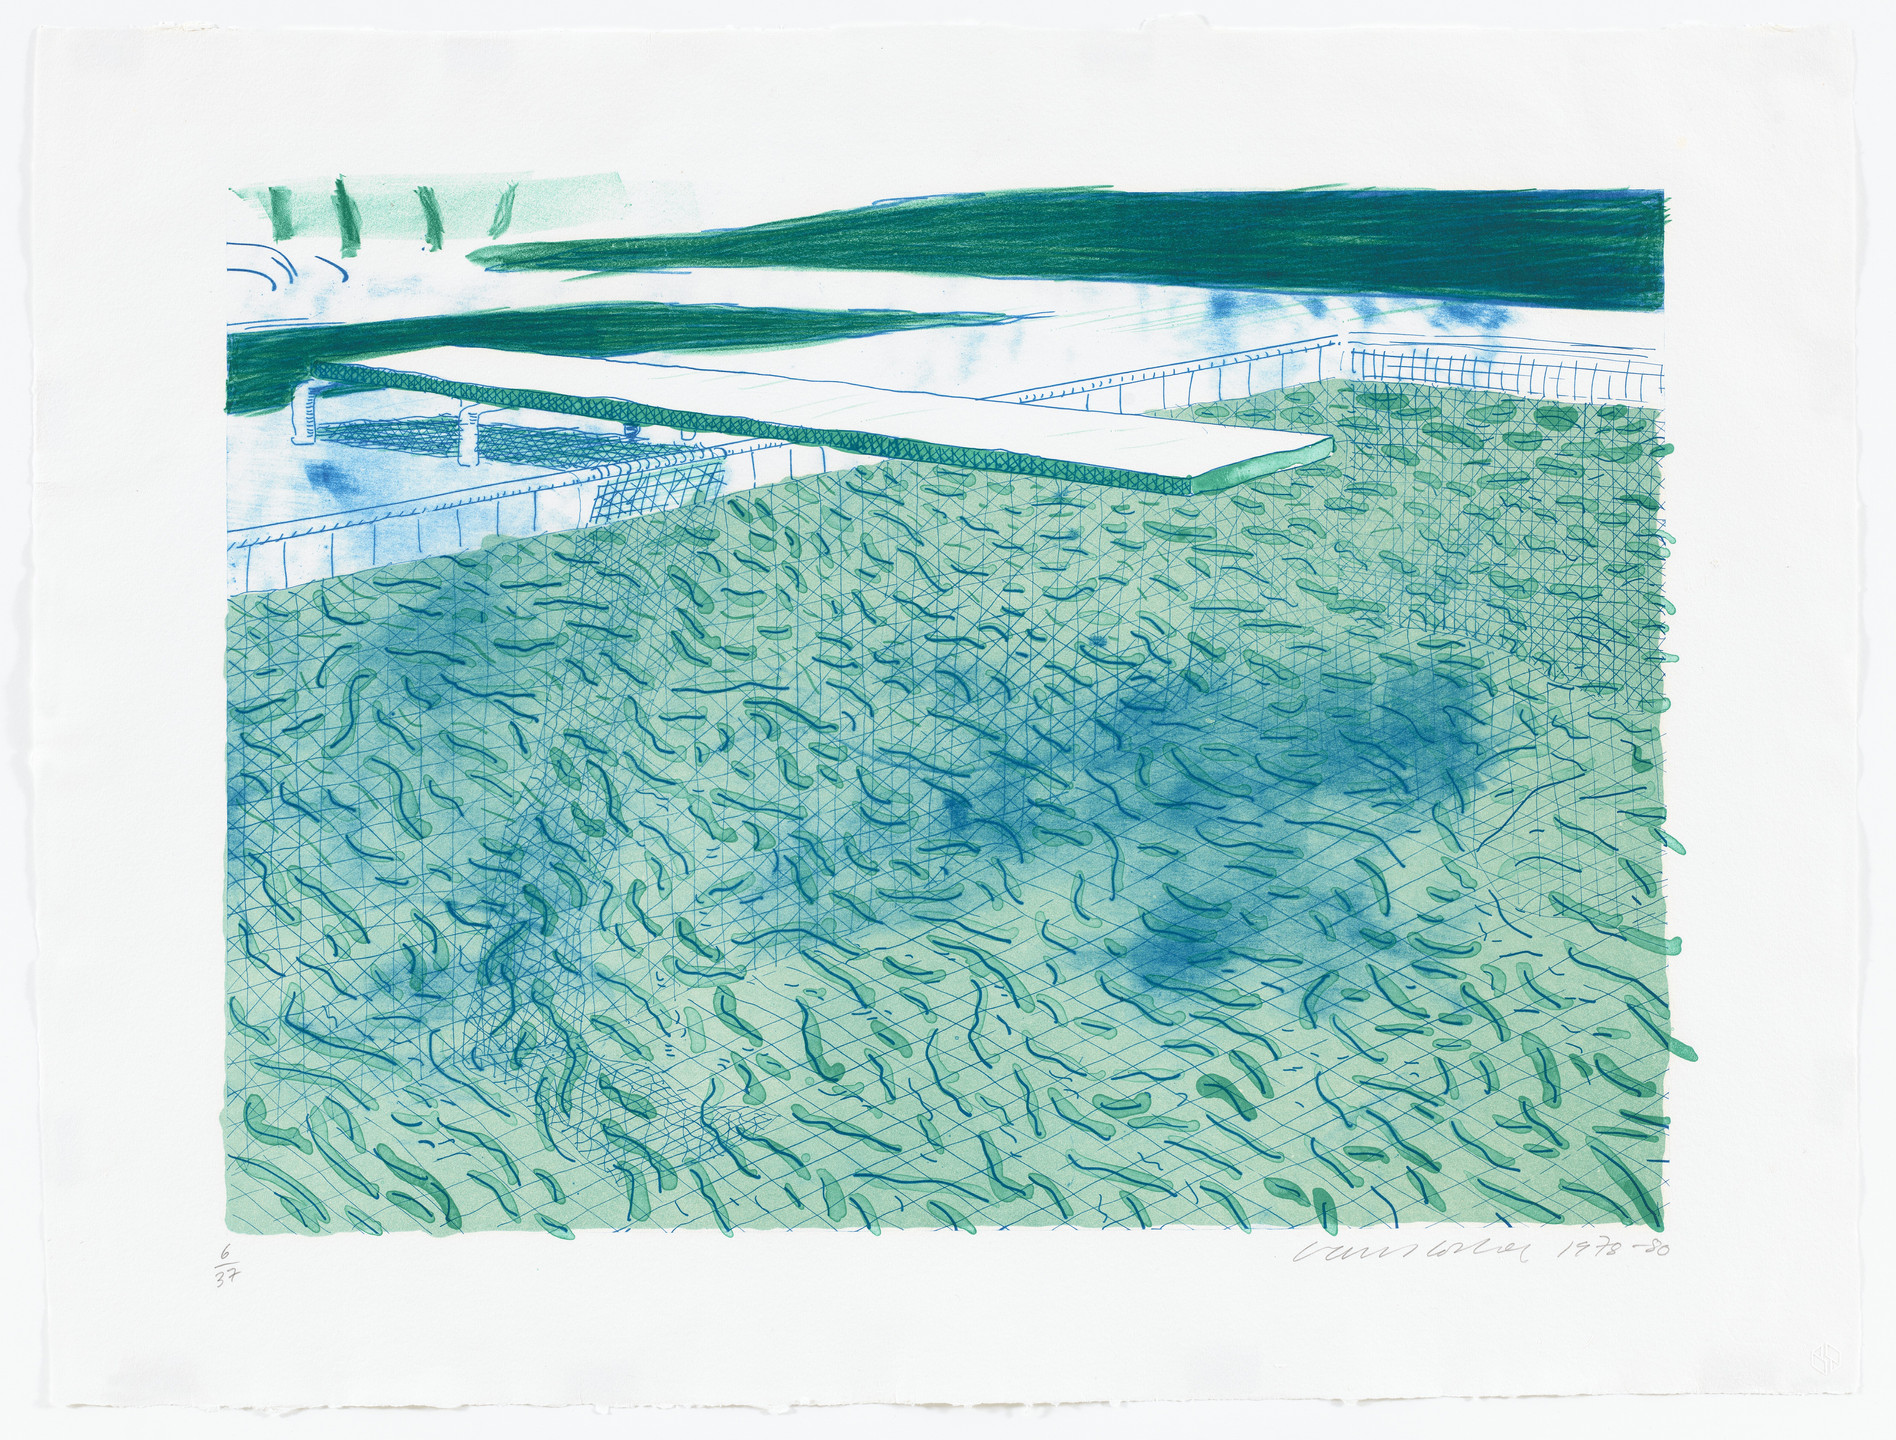 David Hockney. Lithograph of Water Made of Lines, a Green Wash, and a Light Blue Wash. 1978–80